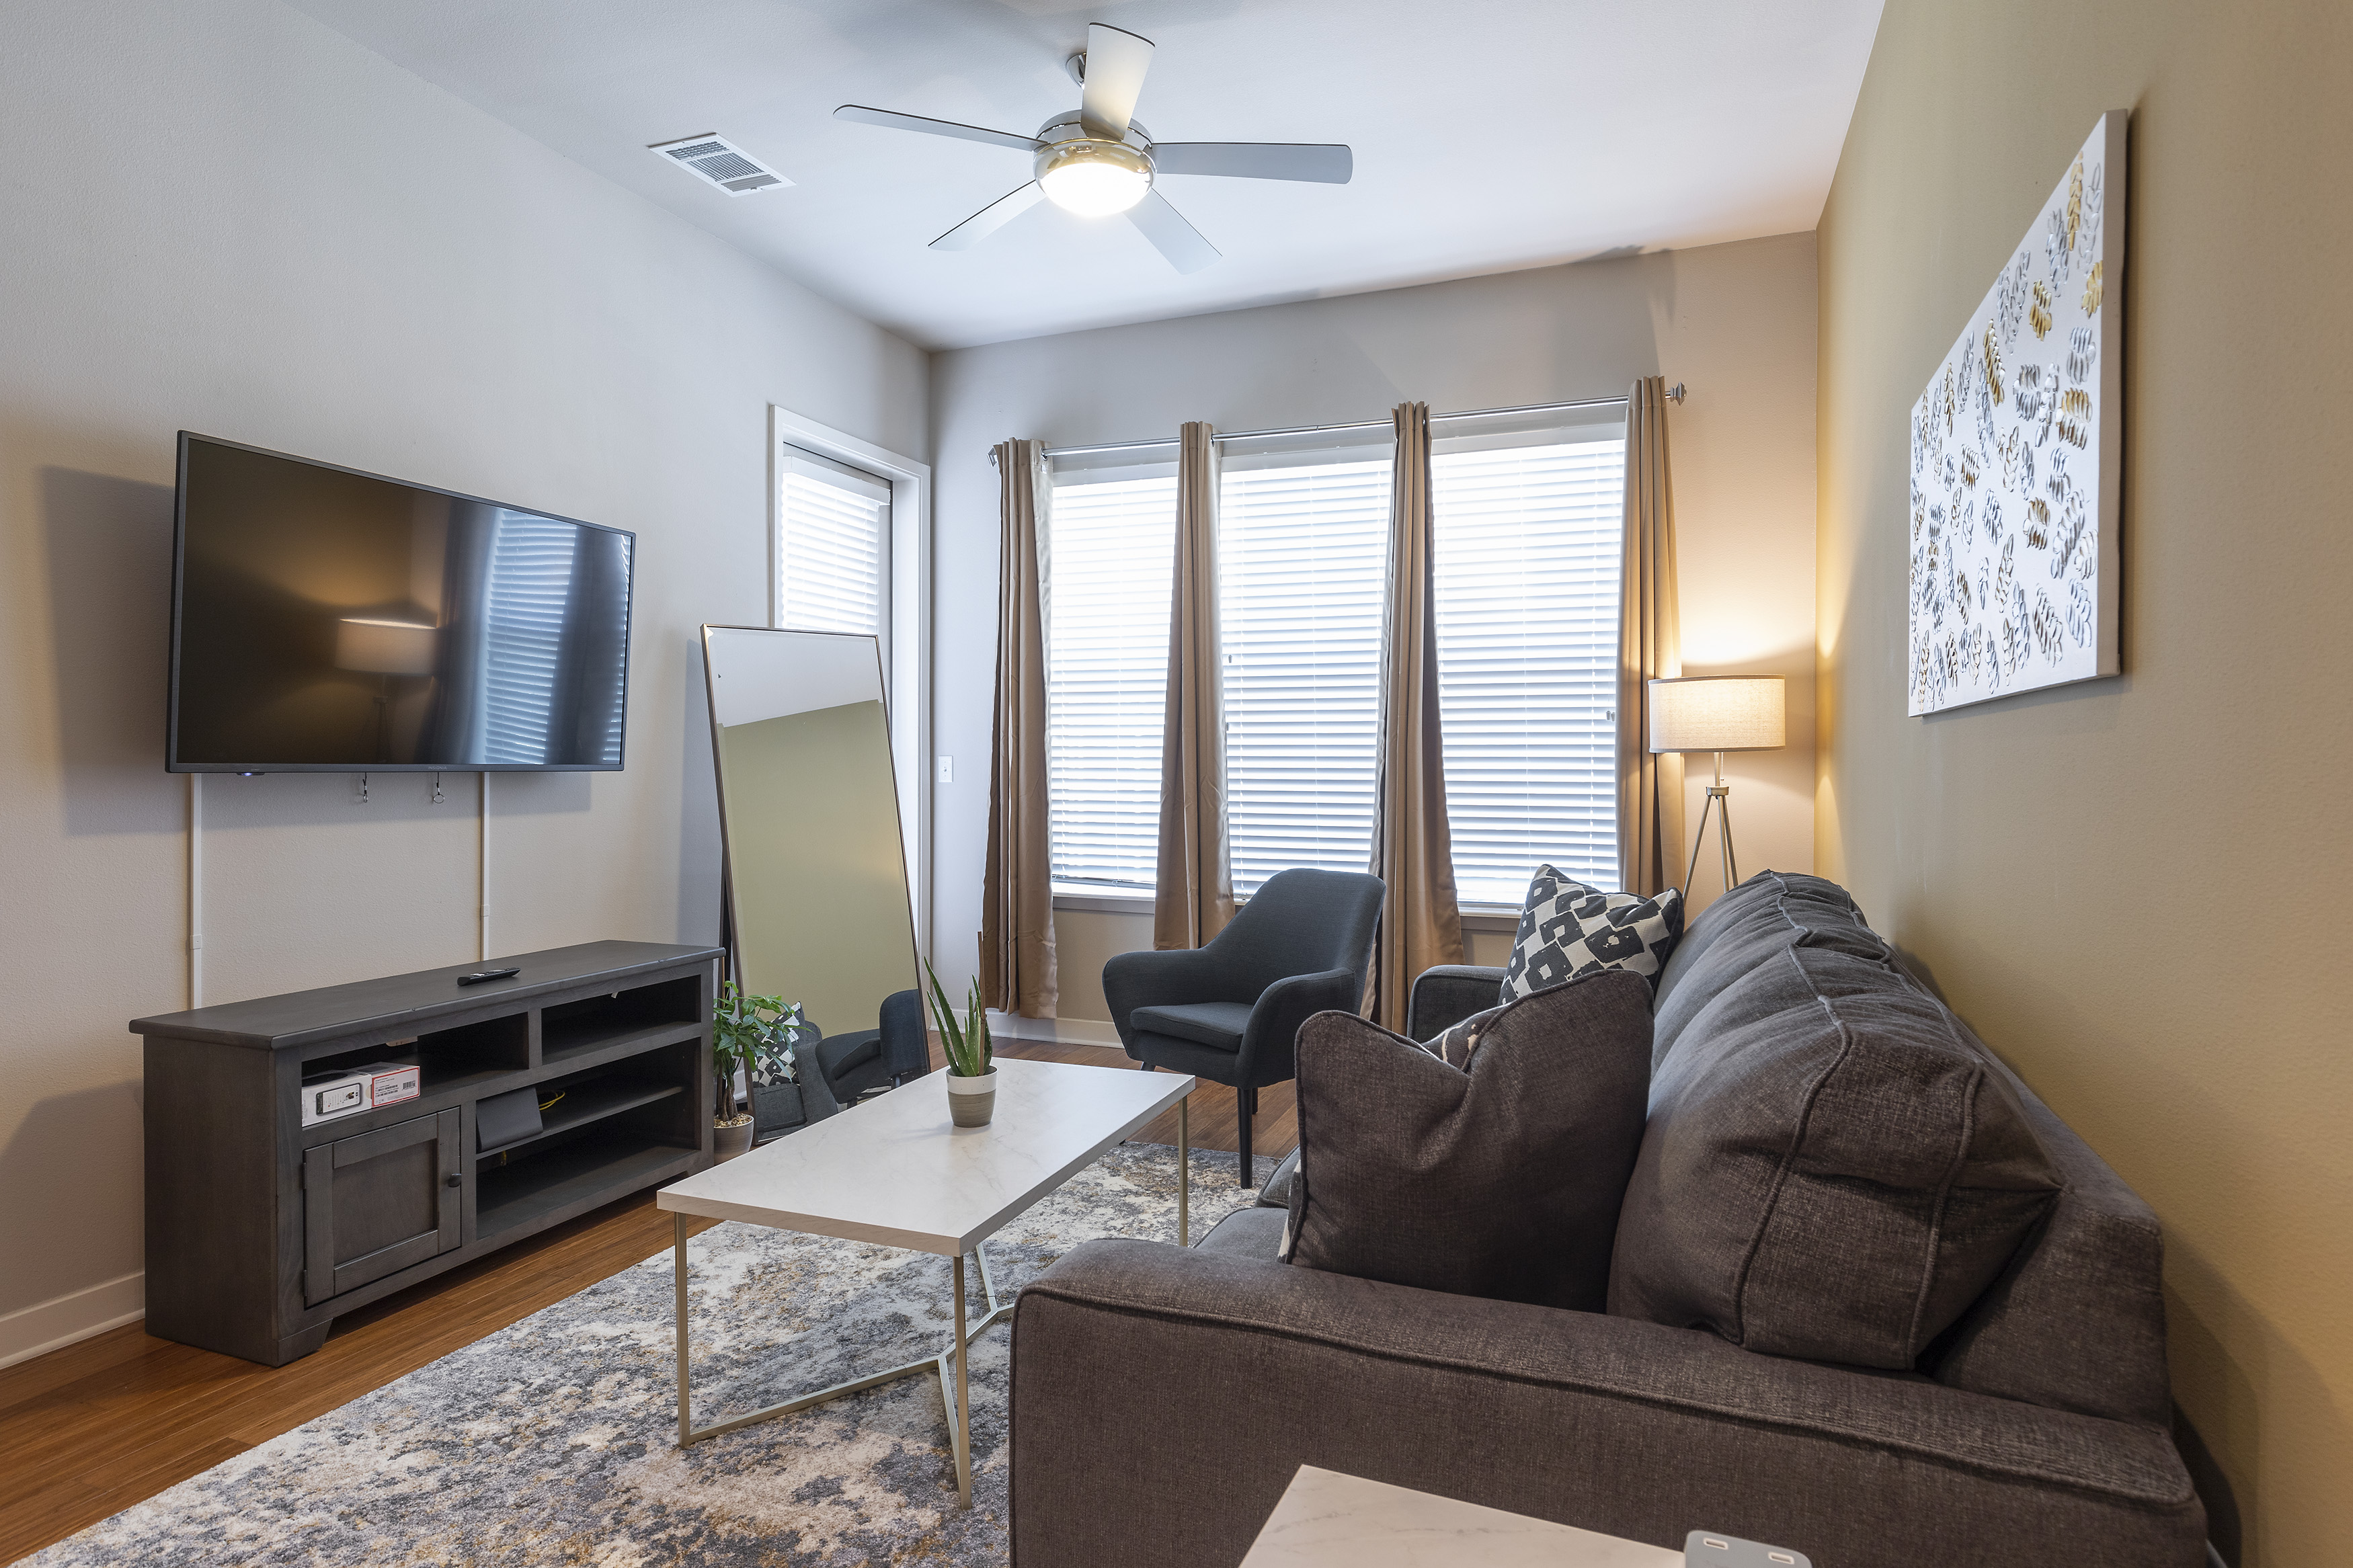 Apartment LUXURIOUS KING SIZED BED MED CENTER FULLY EQUIPPED CONDO photo 21440864